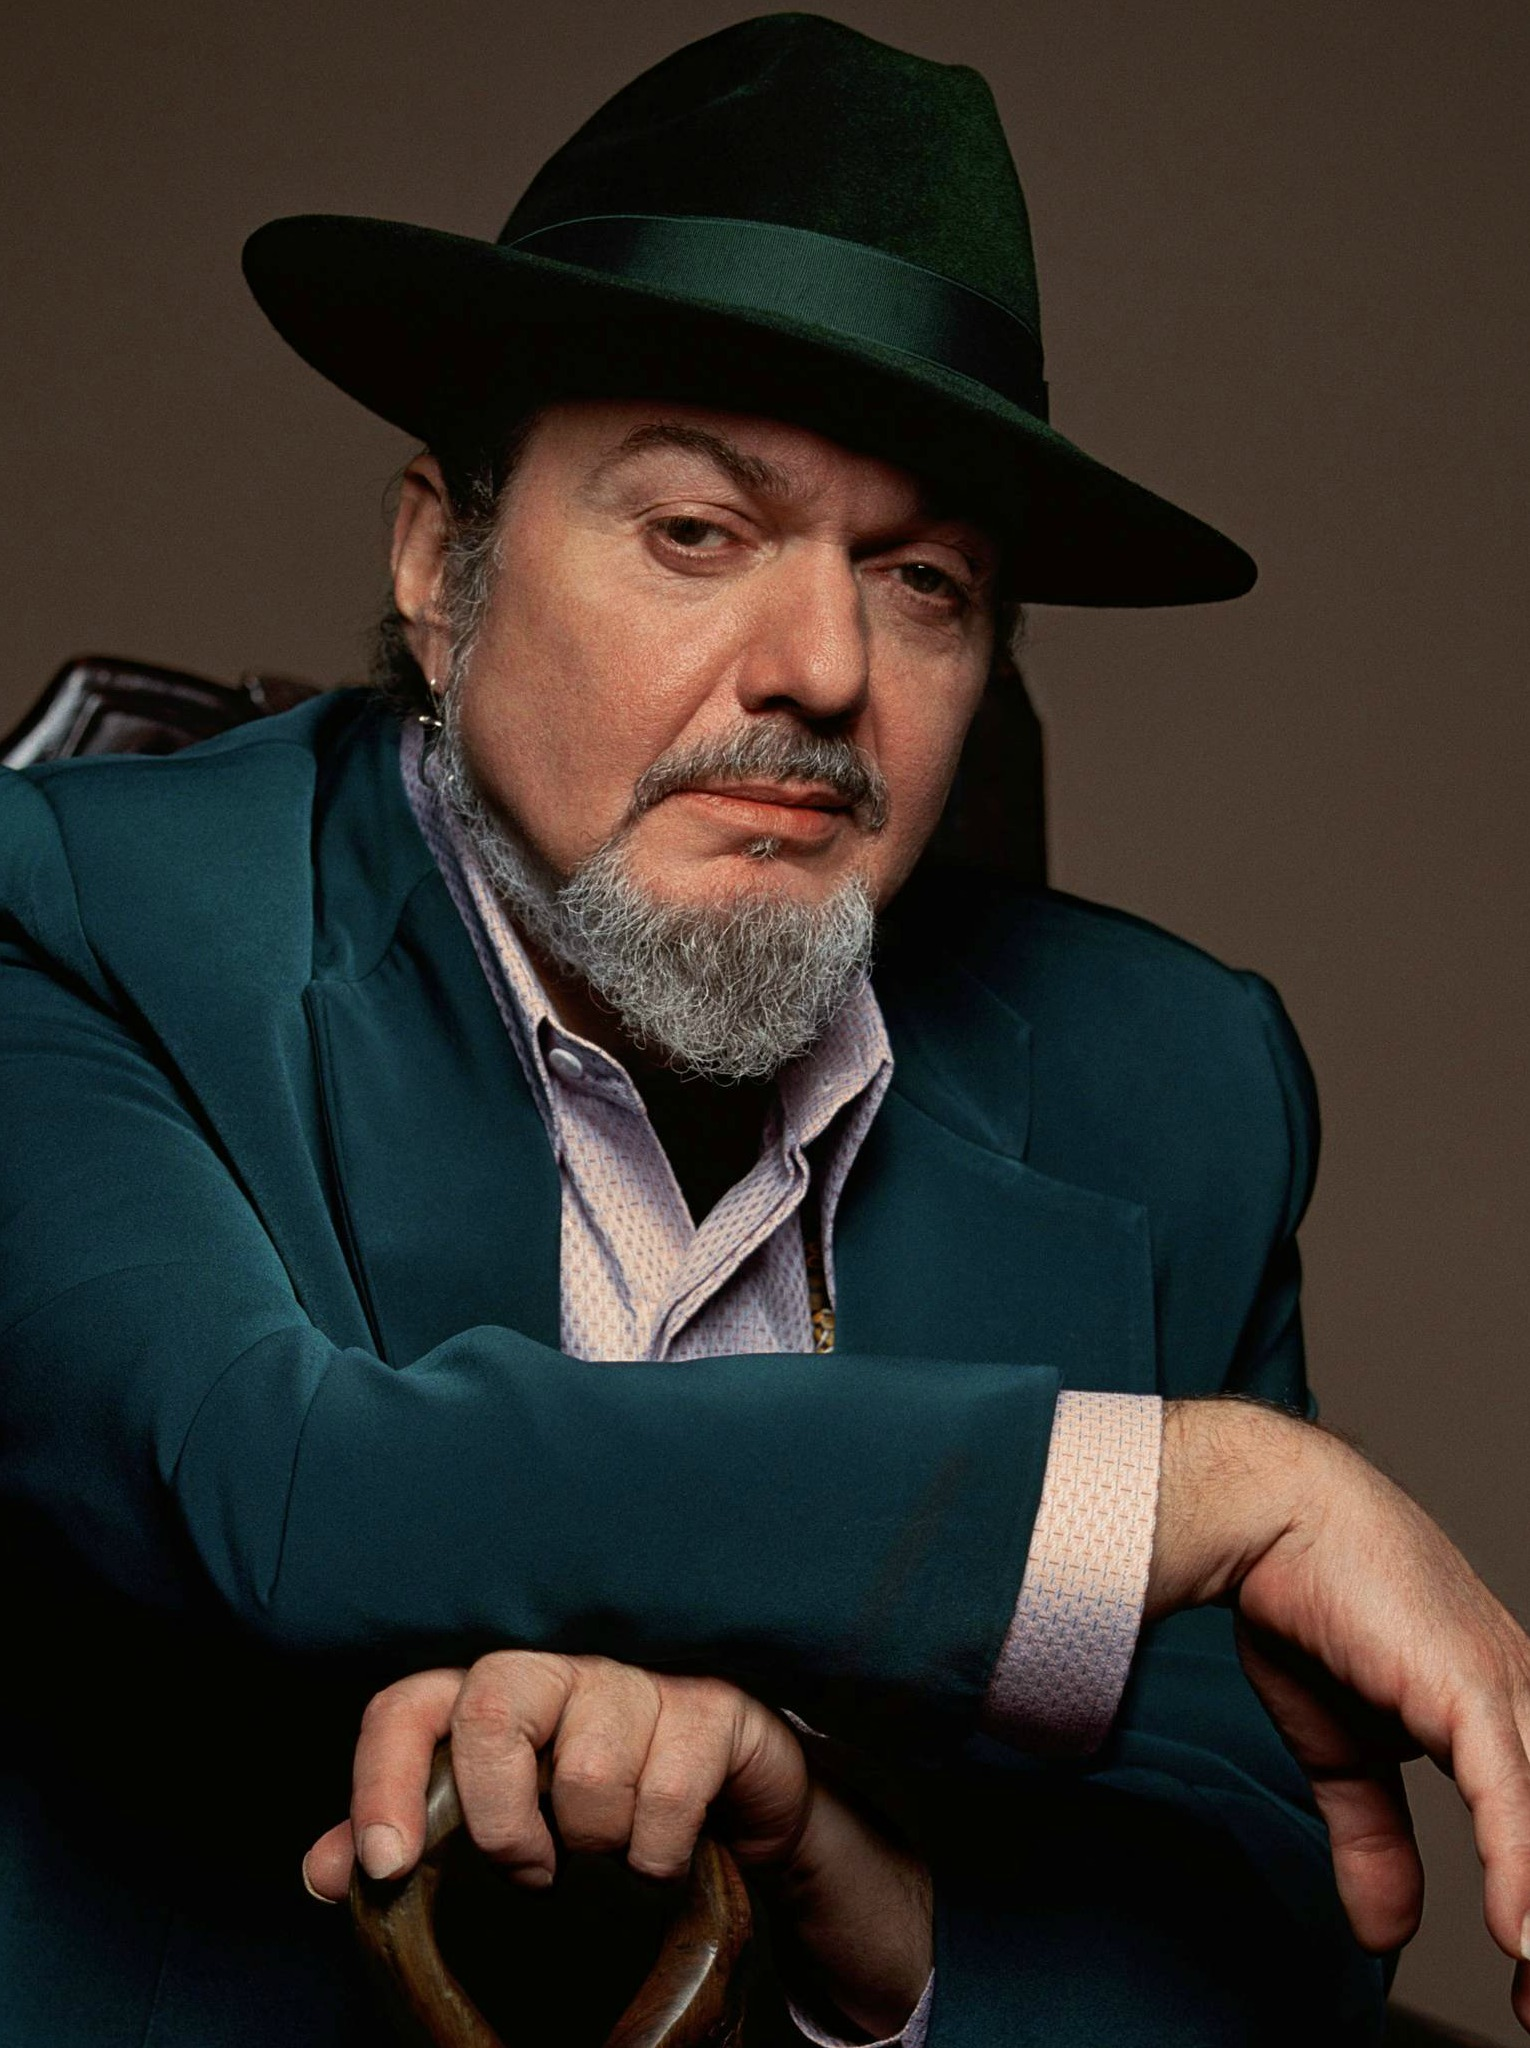 LEGEND...Dr John fuses jazz, blues, zydeco and rock n' roll